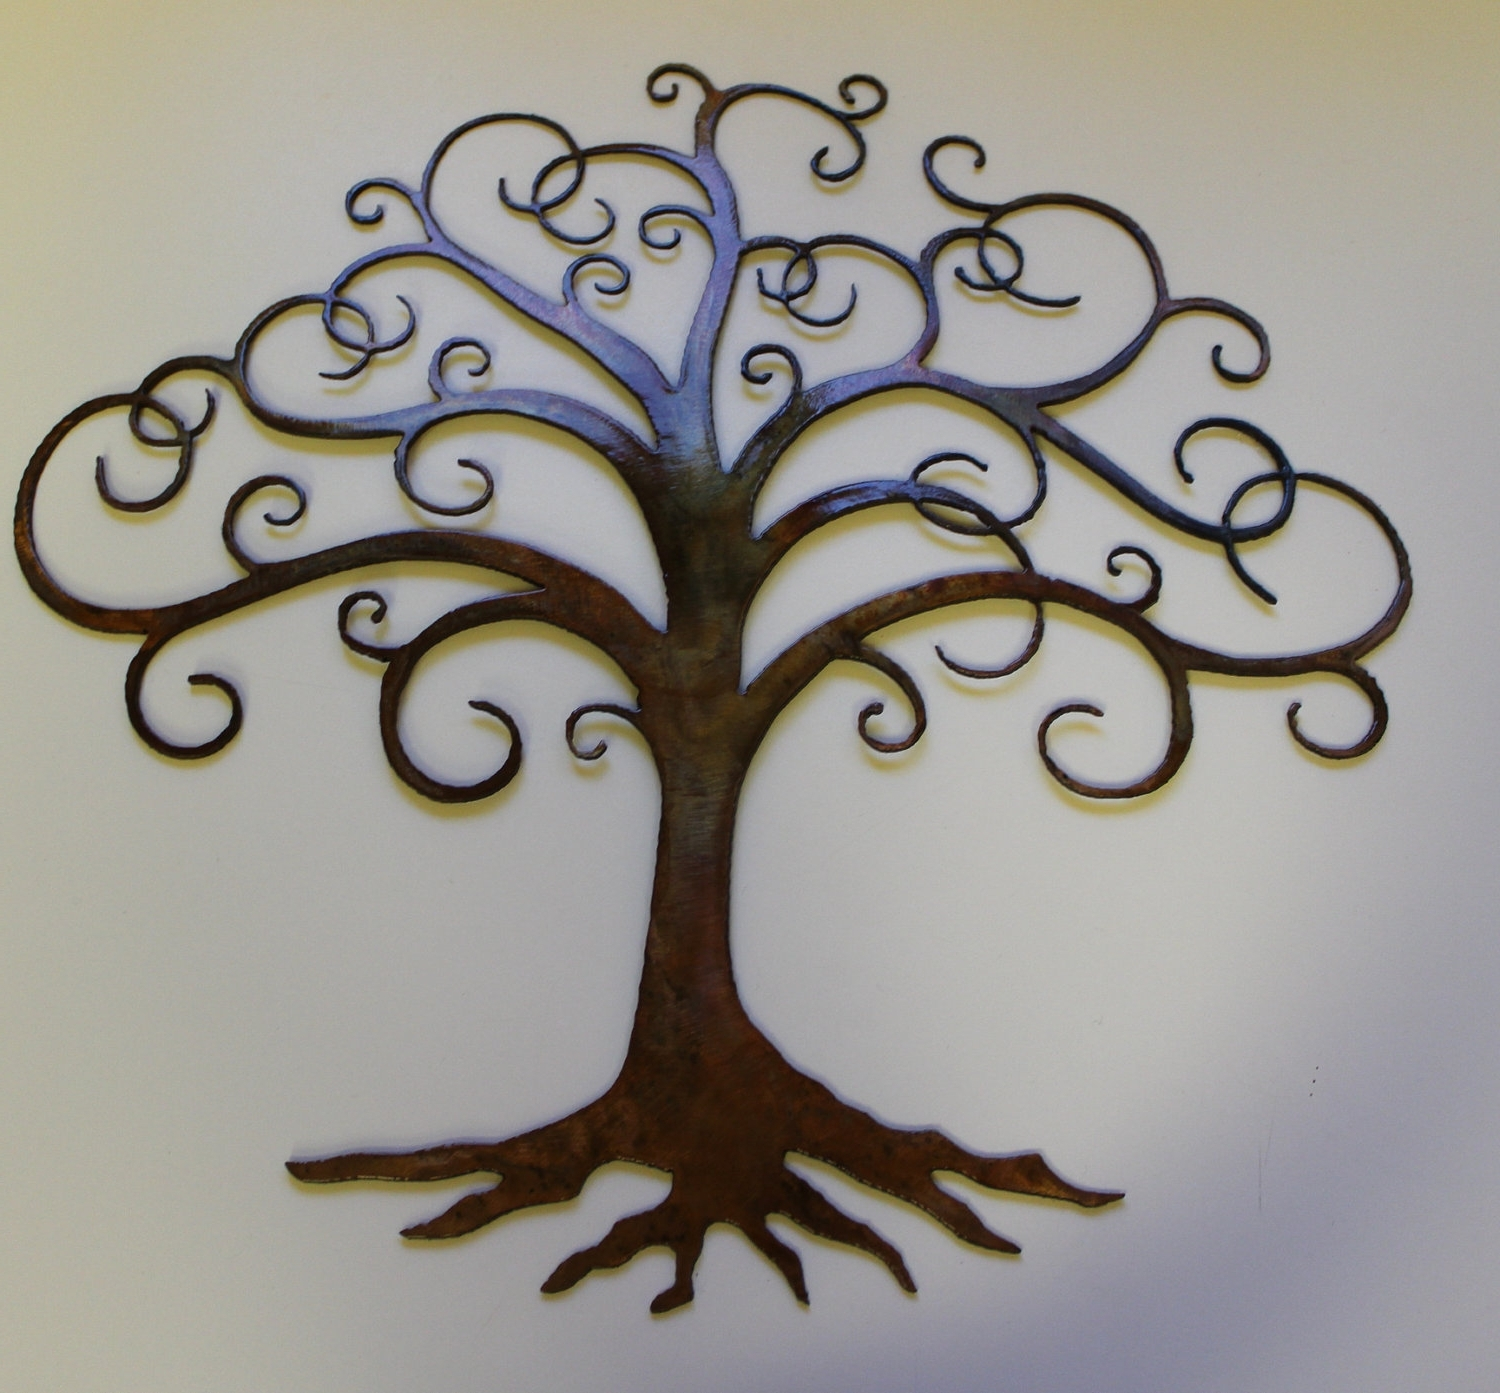 Wrought Iron Tree Wall Art Throughout 2018 Black Wrought Iron Tree Wall Decor • Walls Decor (View 1 of 15)